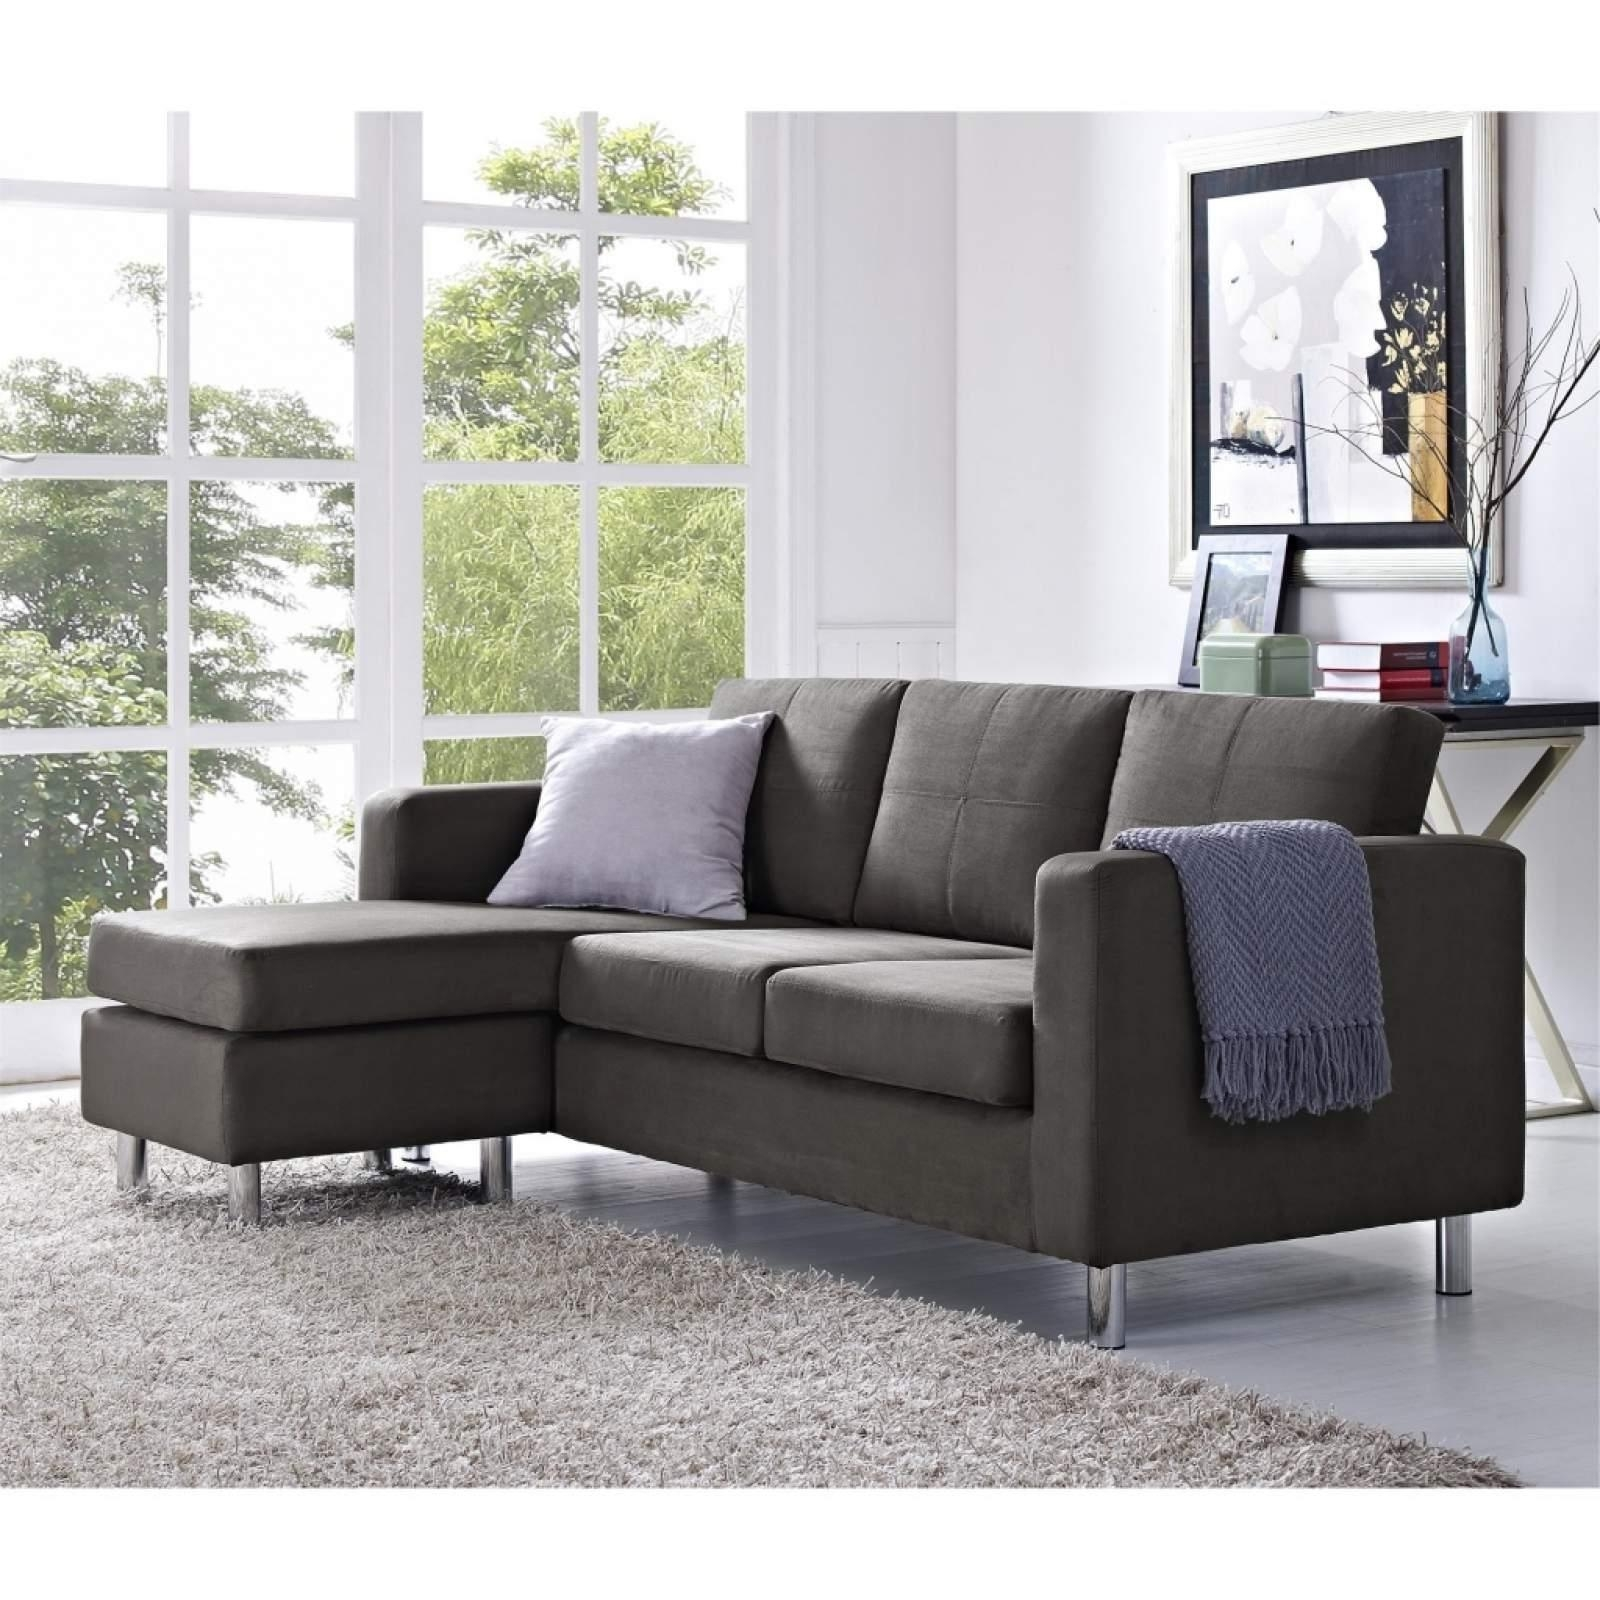 Modular Sectional Sofa Small Spaces: 20 Best Collection Of Small Modular Sofas